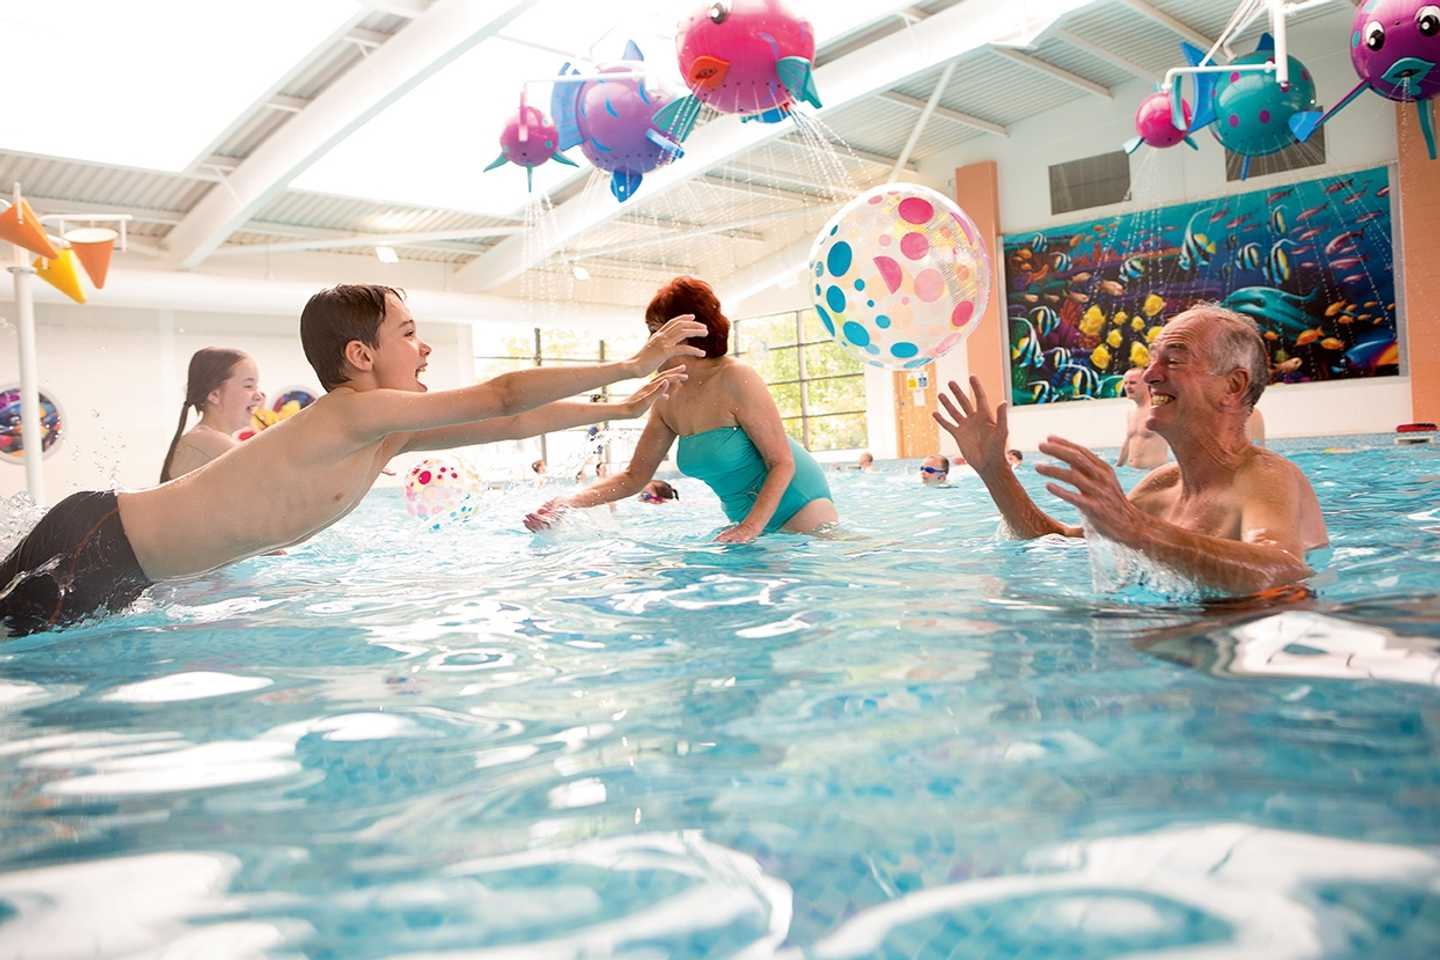 Guests playing ball games in the indoor pool